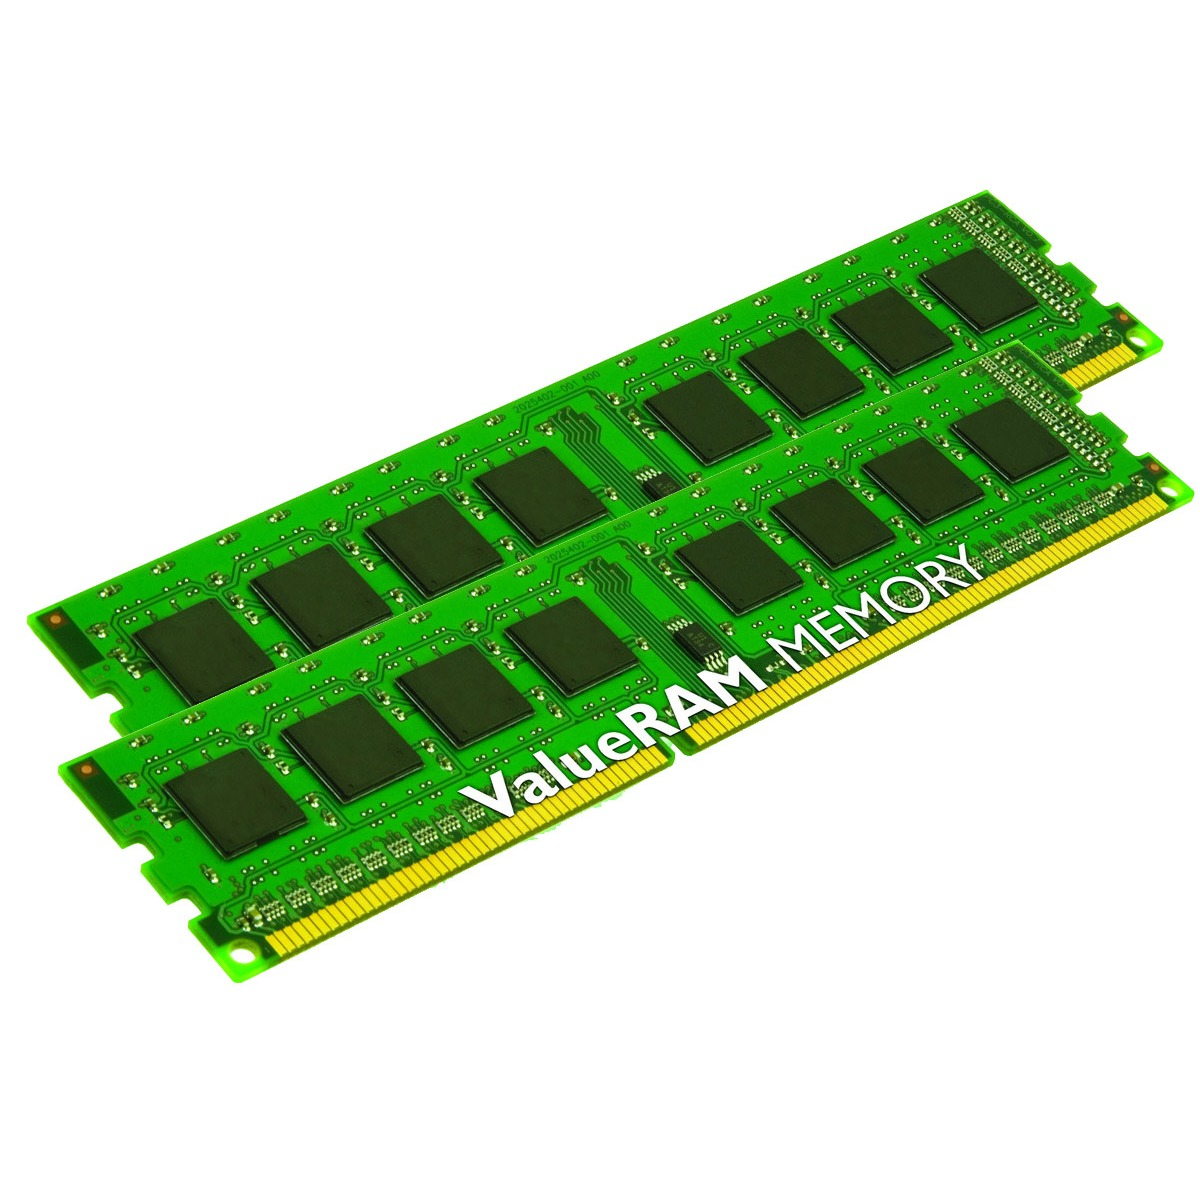 Mémoire PC Kingston ValueRAM 8 Go (2x 4Go) DDR3 1333 MHz Kingston ValueRAM 8 Go (kit 2x 4 Go) DDR3-SDRAM PC10600 CL9 - KVR1333D3N9K2/8G (garantie 10 ans par Kingston)